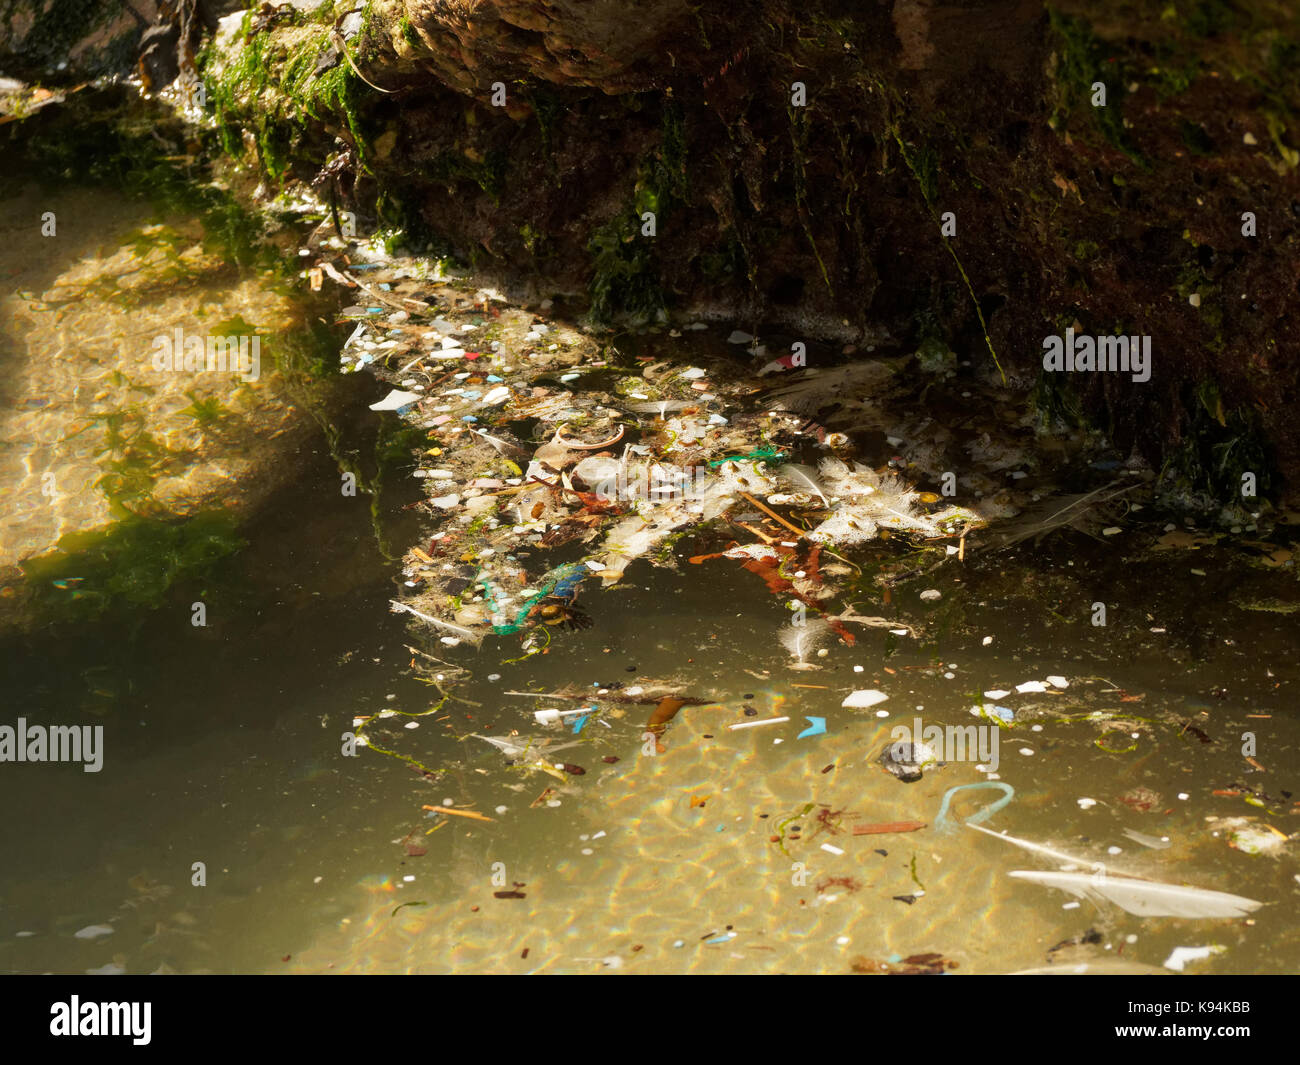 Beaches and rock pools polluted with plastic micro waste washed in on the tide. 21st, September, 2017  Robert Taylor/Alamy - Stock Image